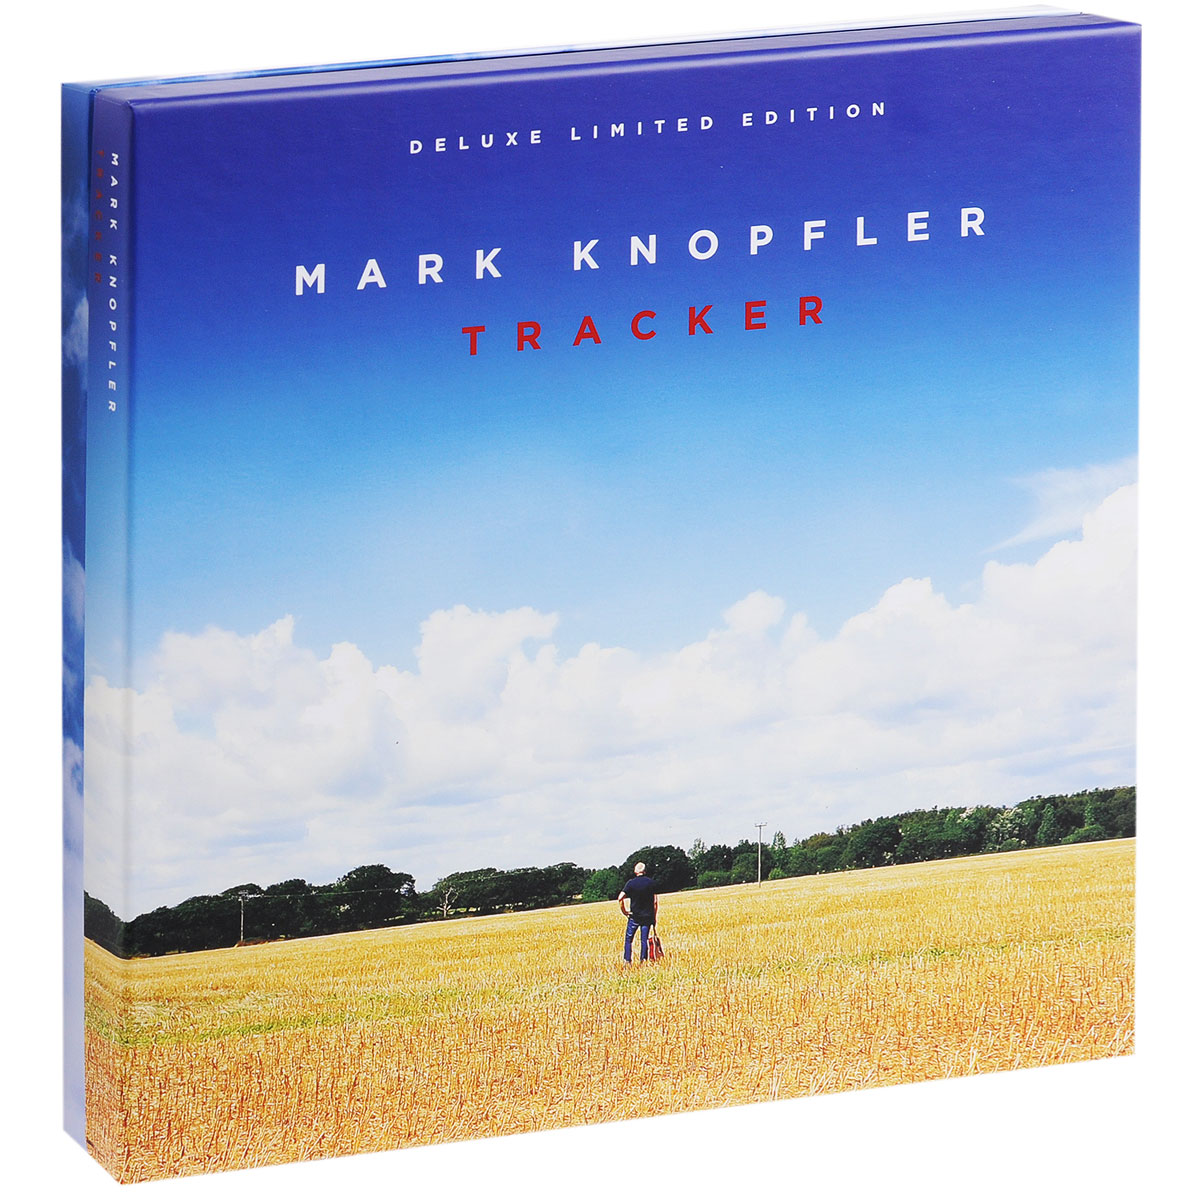 Марк Нопфлер Mark Knopfler. Tracker. Deluxe Limited Edition (2 CD + DVD + 2 LP) the who the who quadrophenia super deluxe limited edition 4 cd dvd lp